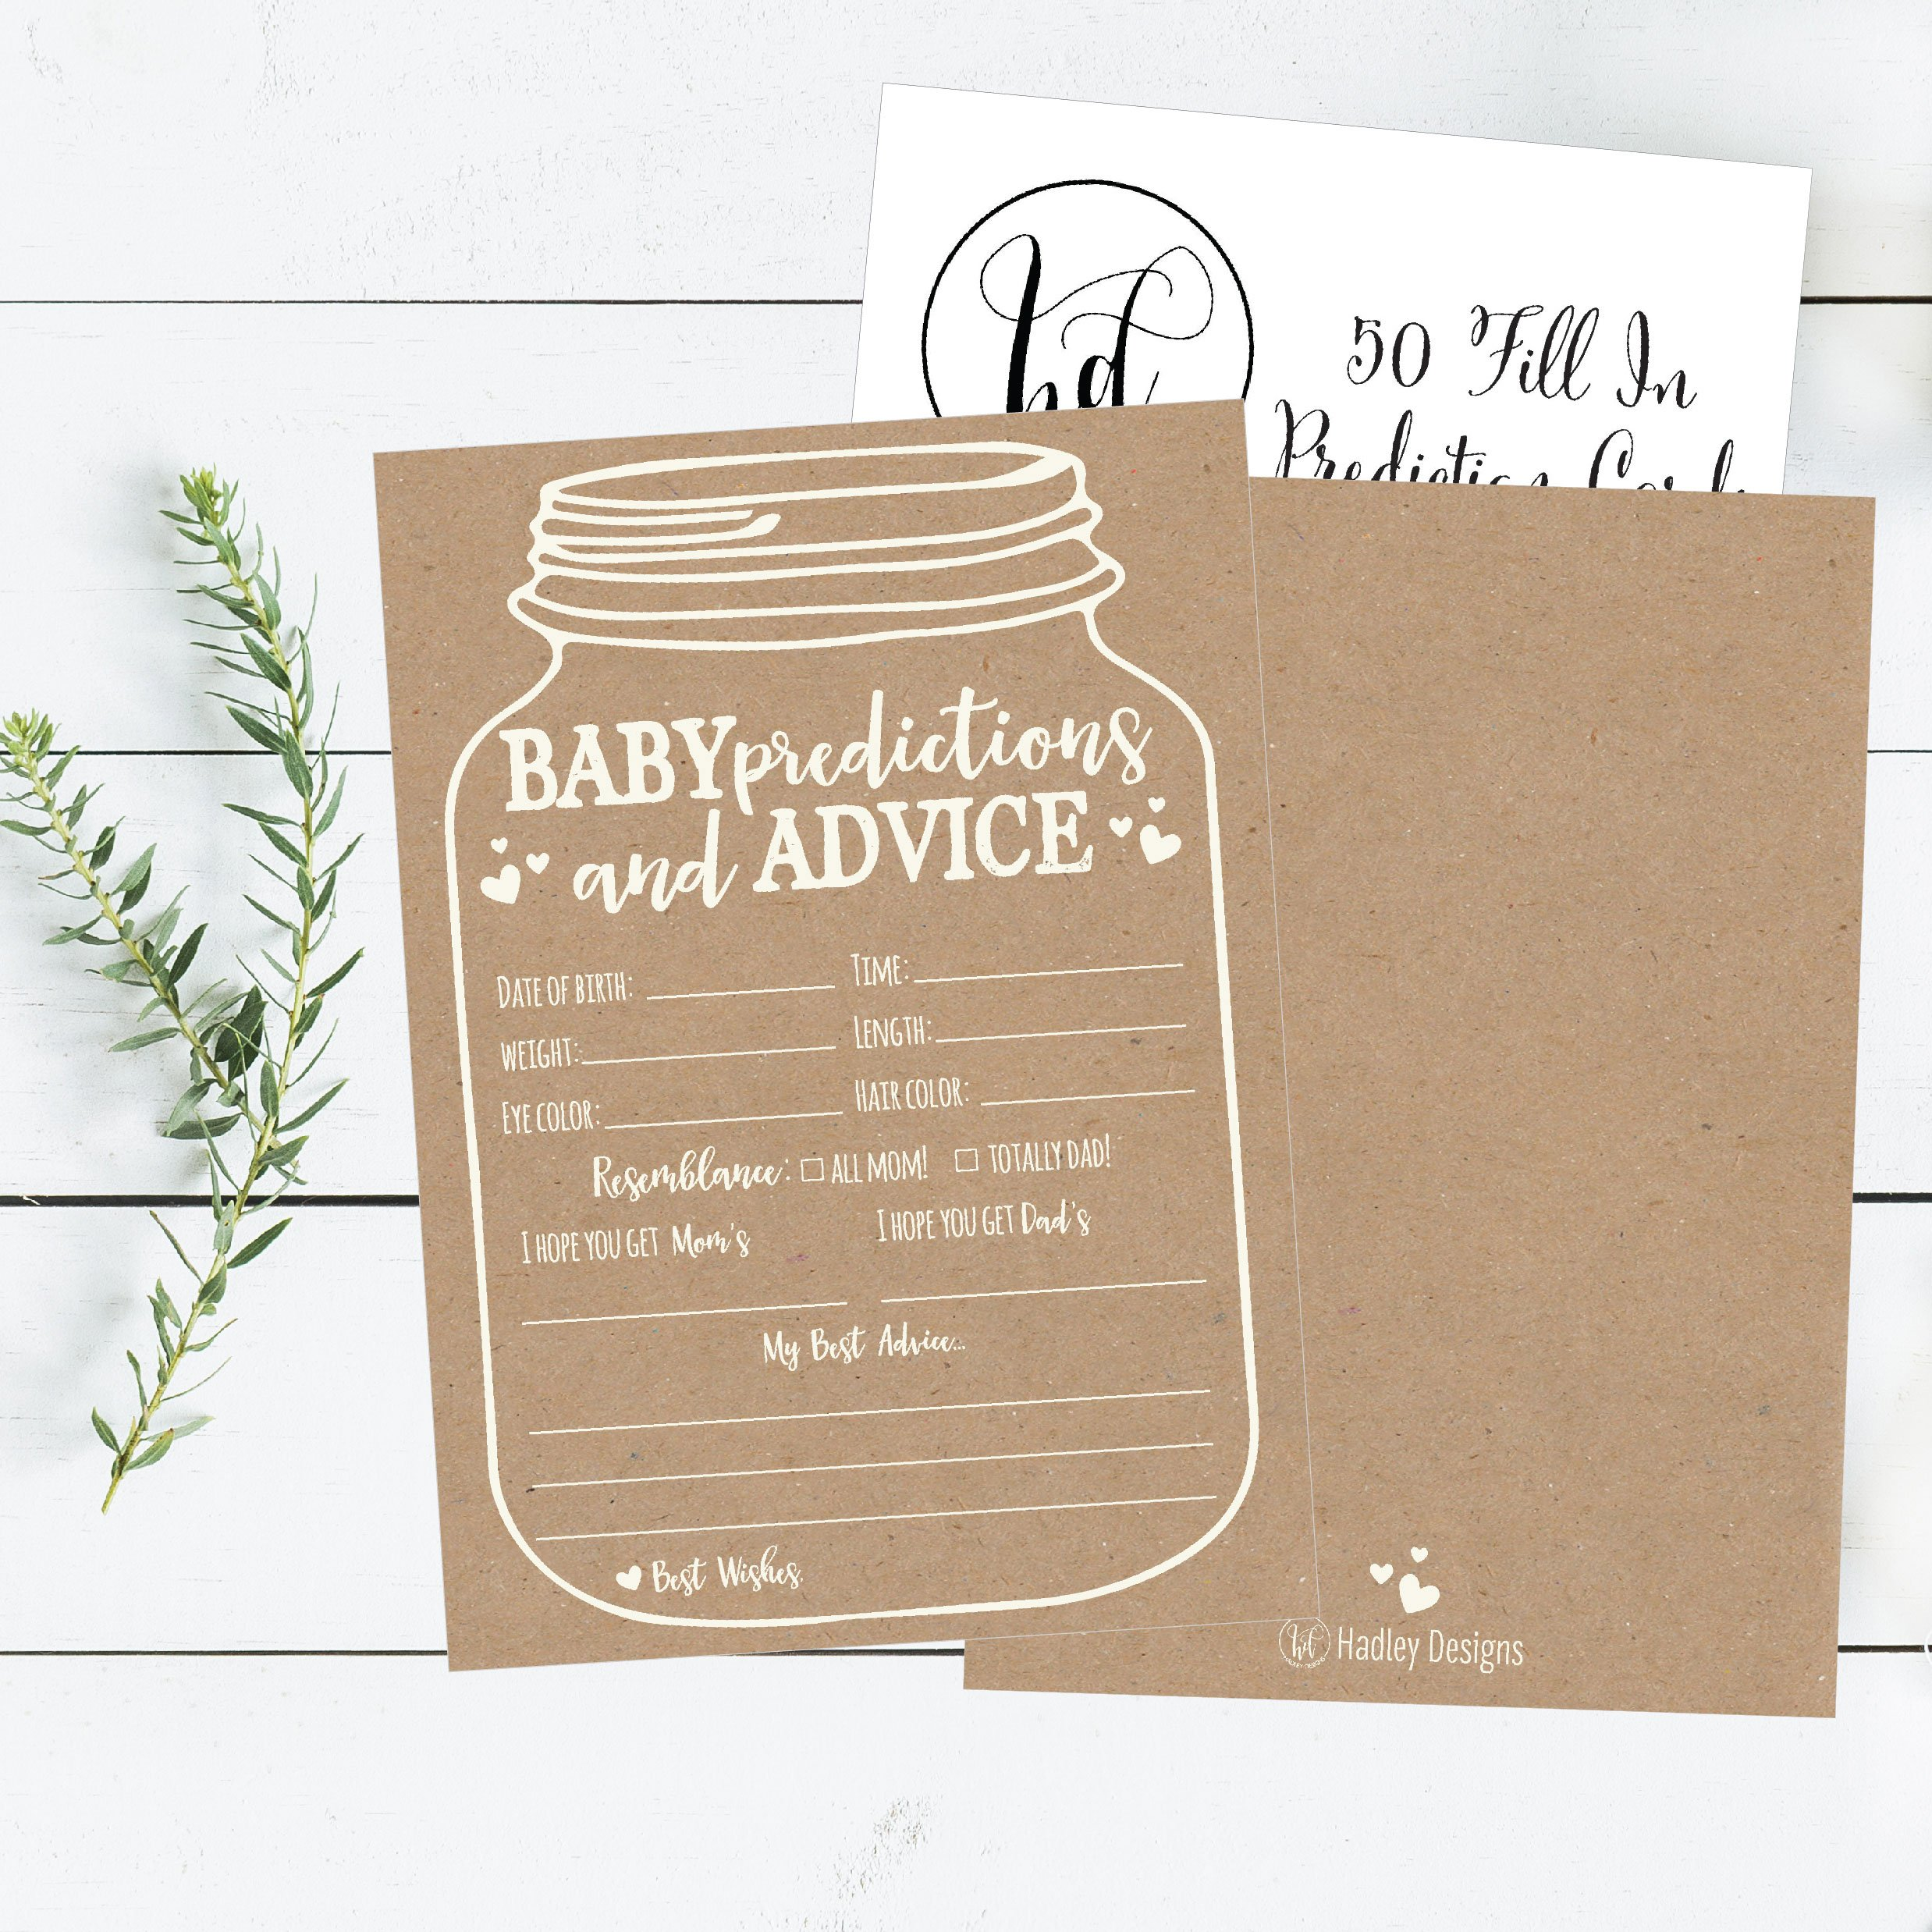 50 Mason Jar Advice and Prediction Cards for Baby Shower Game, New Mom & Dad Card or Mommy & Daddy To Be, For Girl or Boy Babies, New Parent Message Advice Book, Fun Gender Neutral Shower Party Favors by Hadley Designs (Image #3)